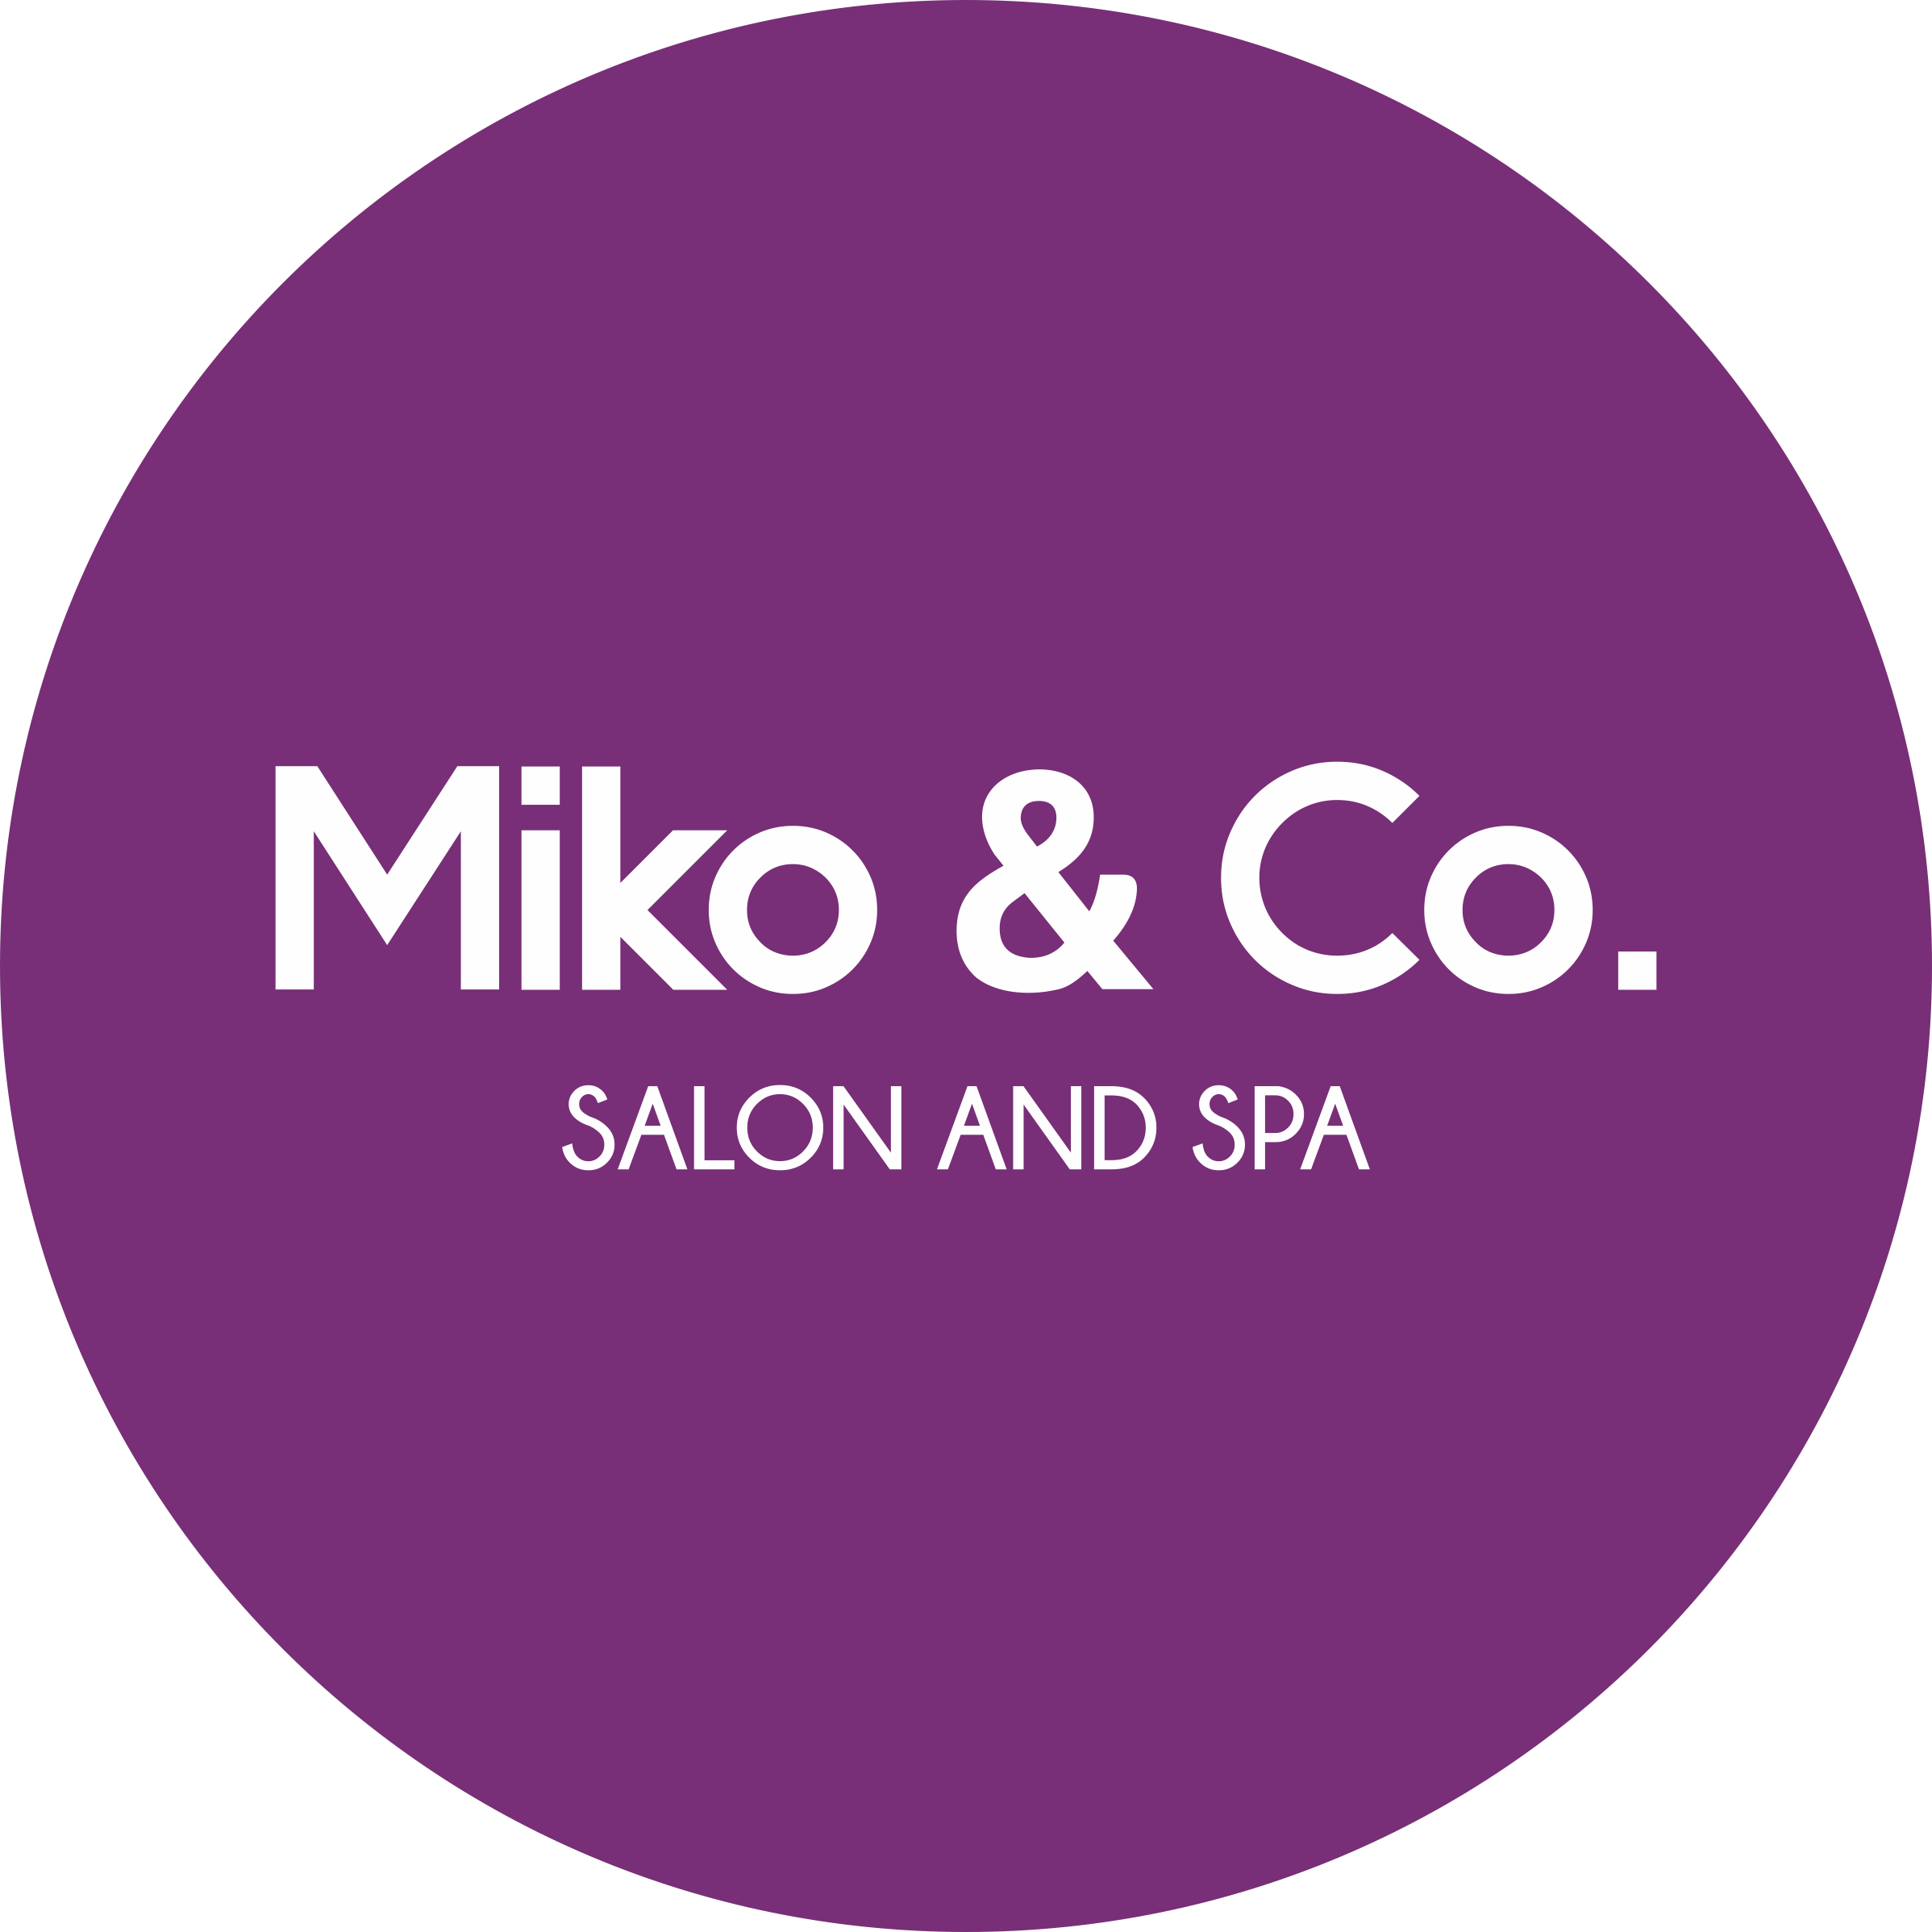 Miko & Co. Salon and Spa Logo